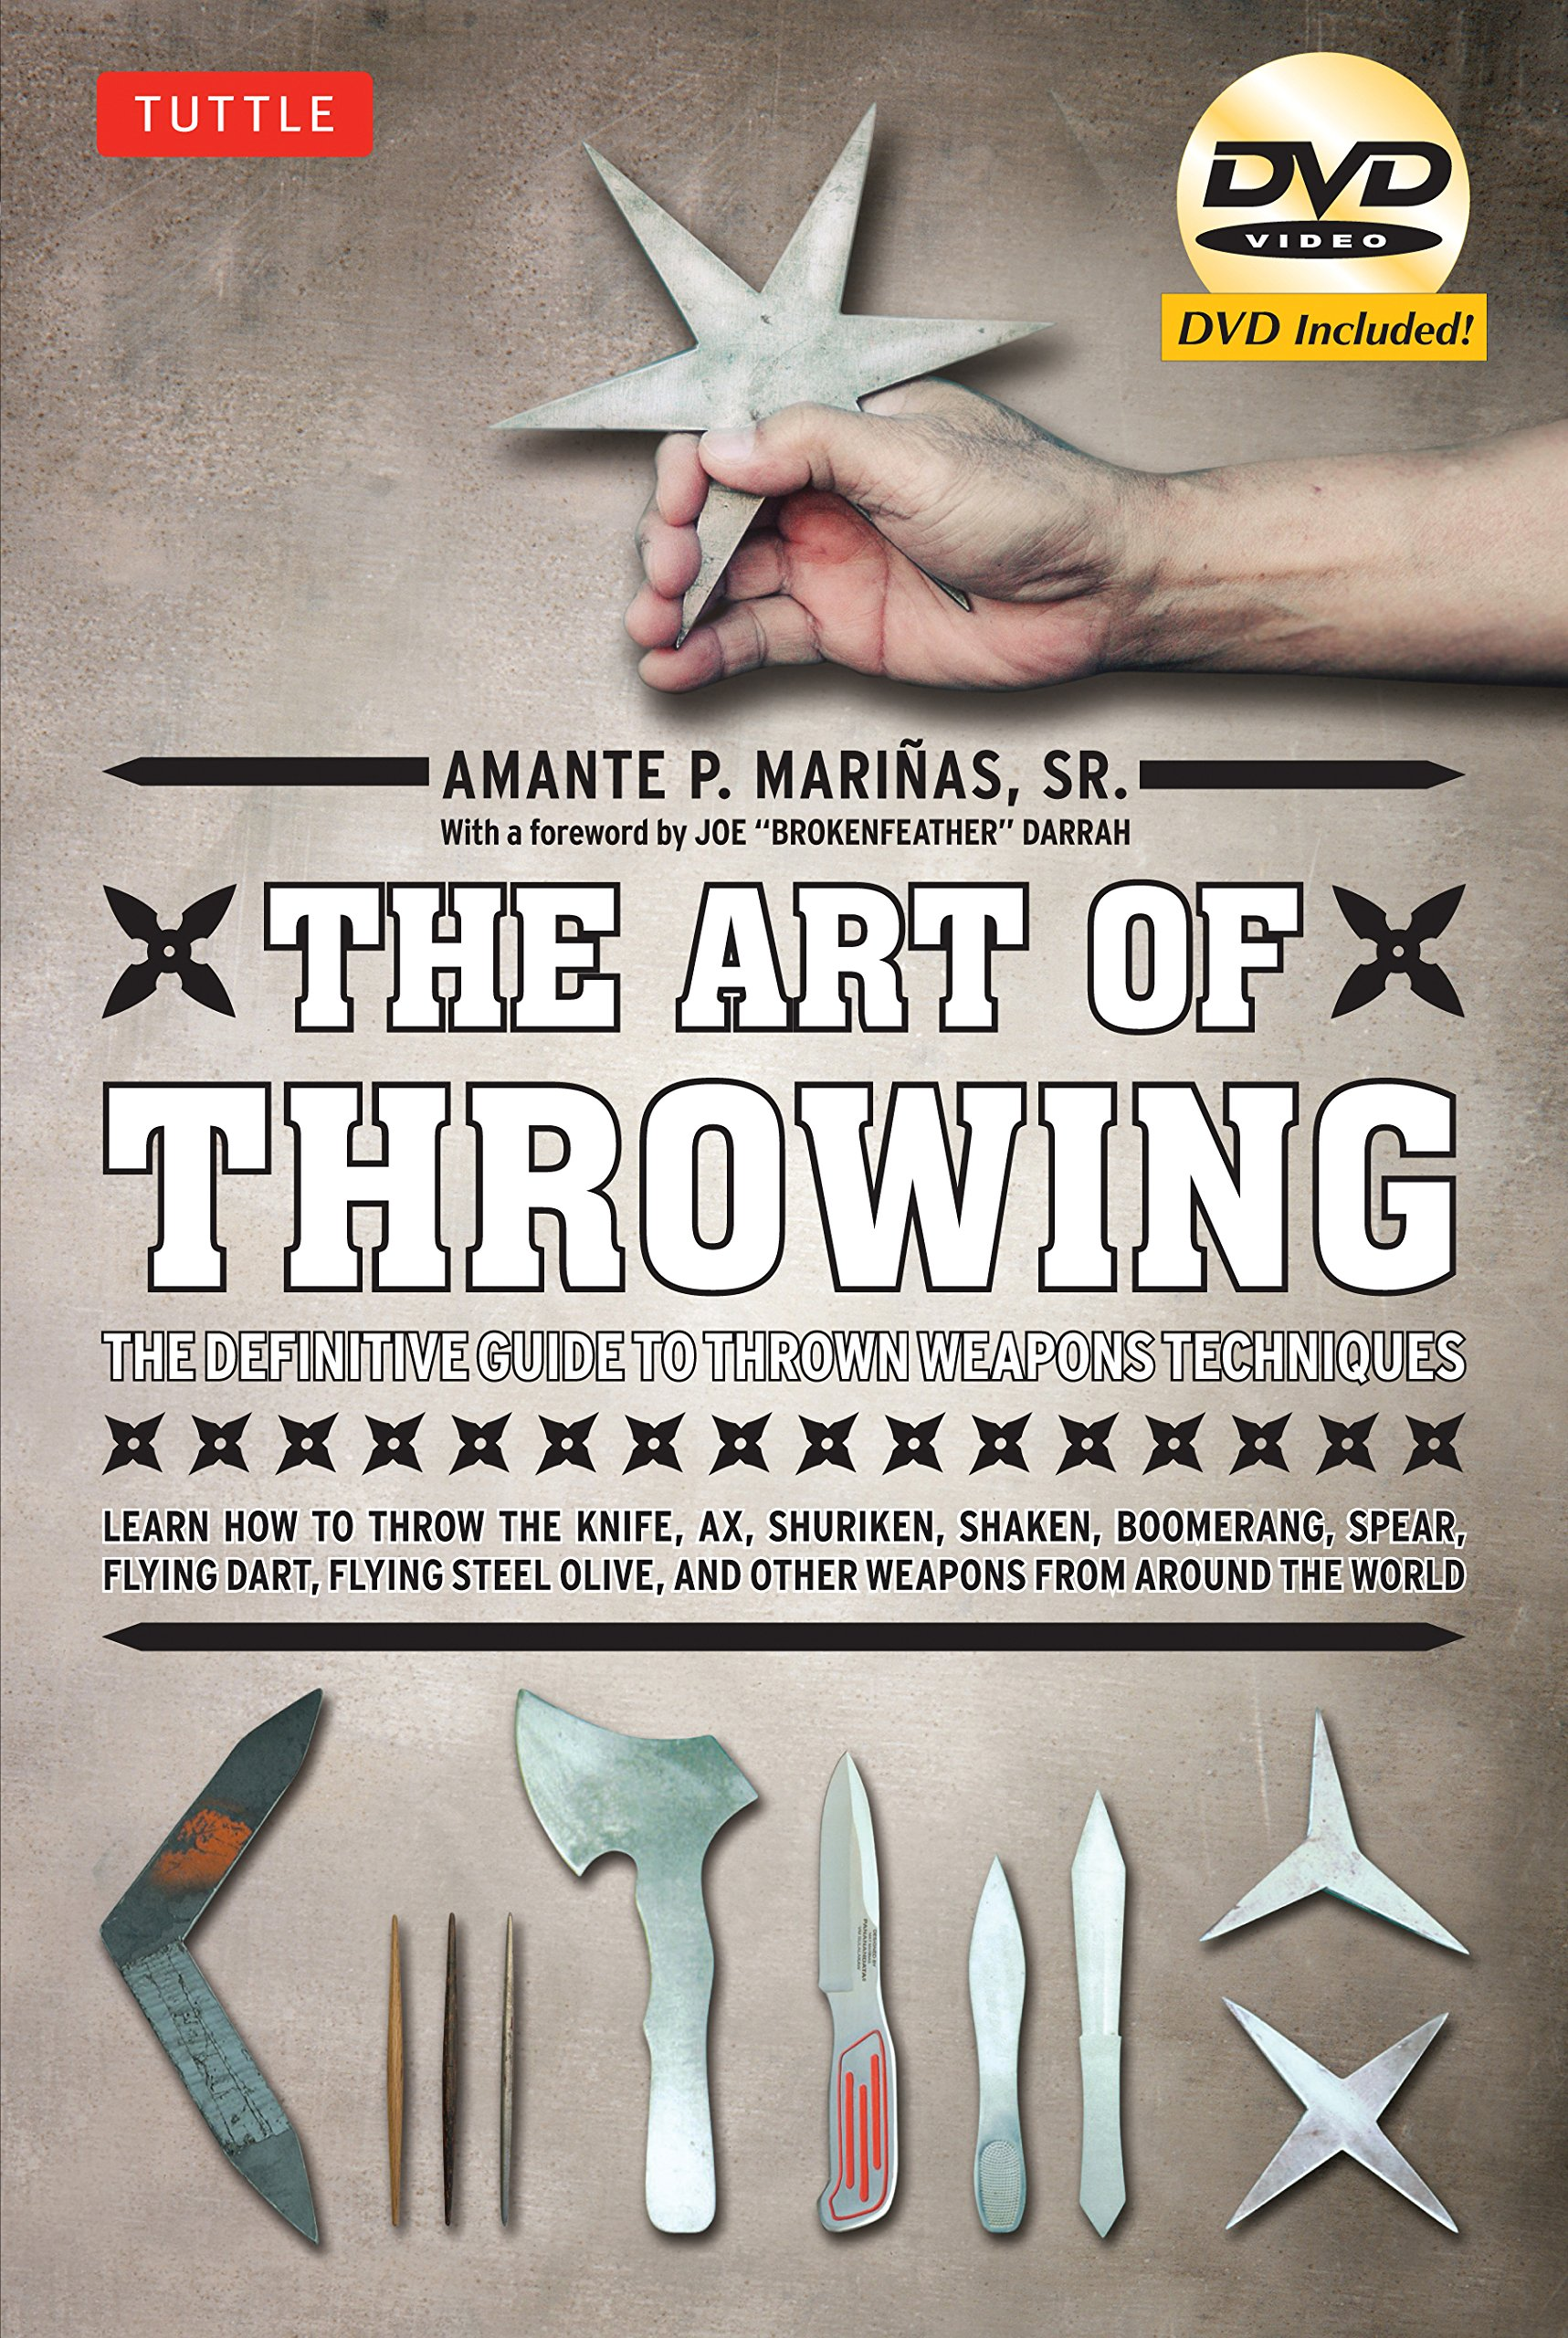 Download The Art of Throwing: The Definitive Guide to Thrown Weapons Techniques [DVD Included] ebook